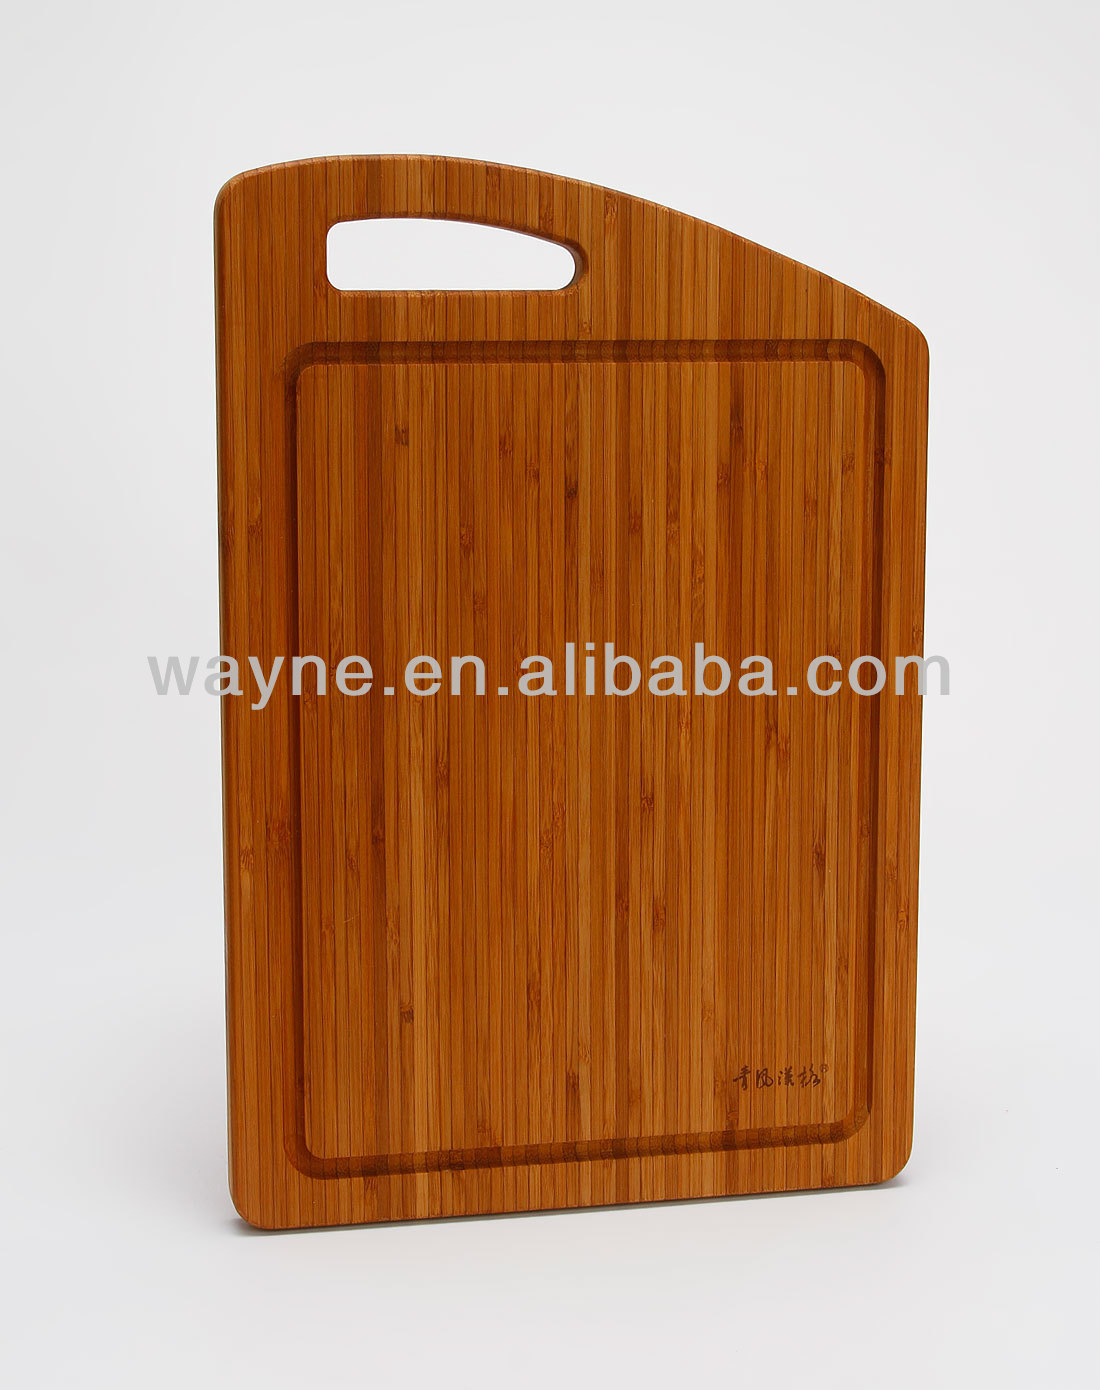 bamboo cutting boards bamboo blocks for crafts